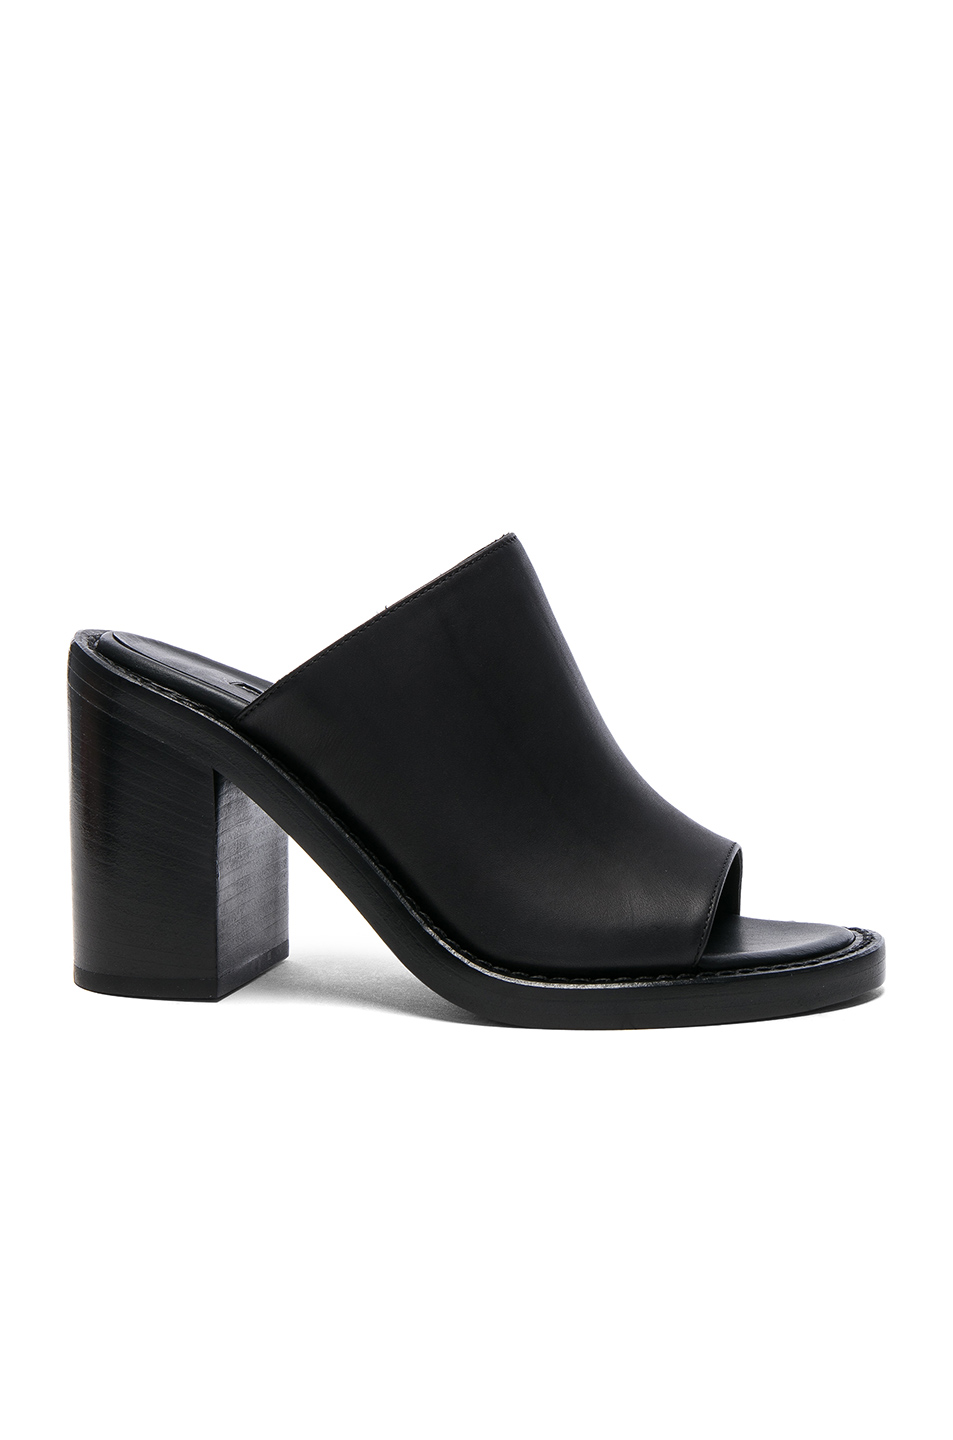 Ann Demeulemeester Leather Mules in Black